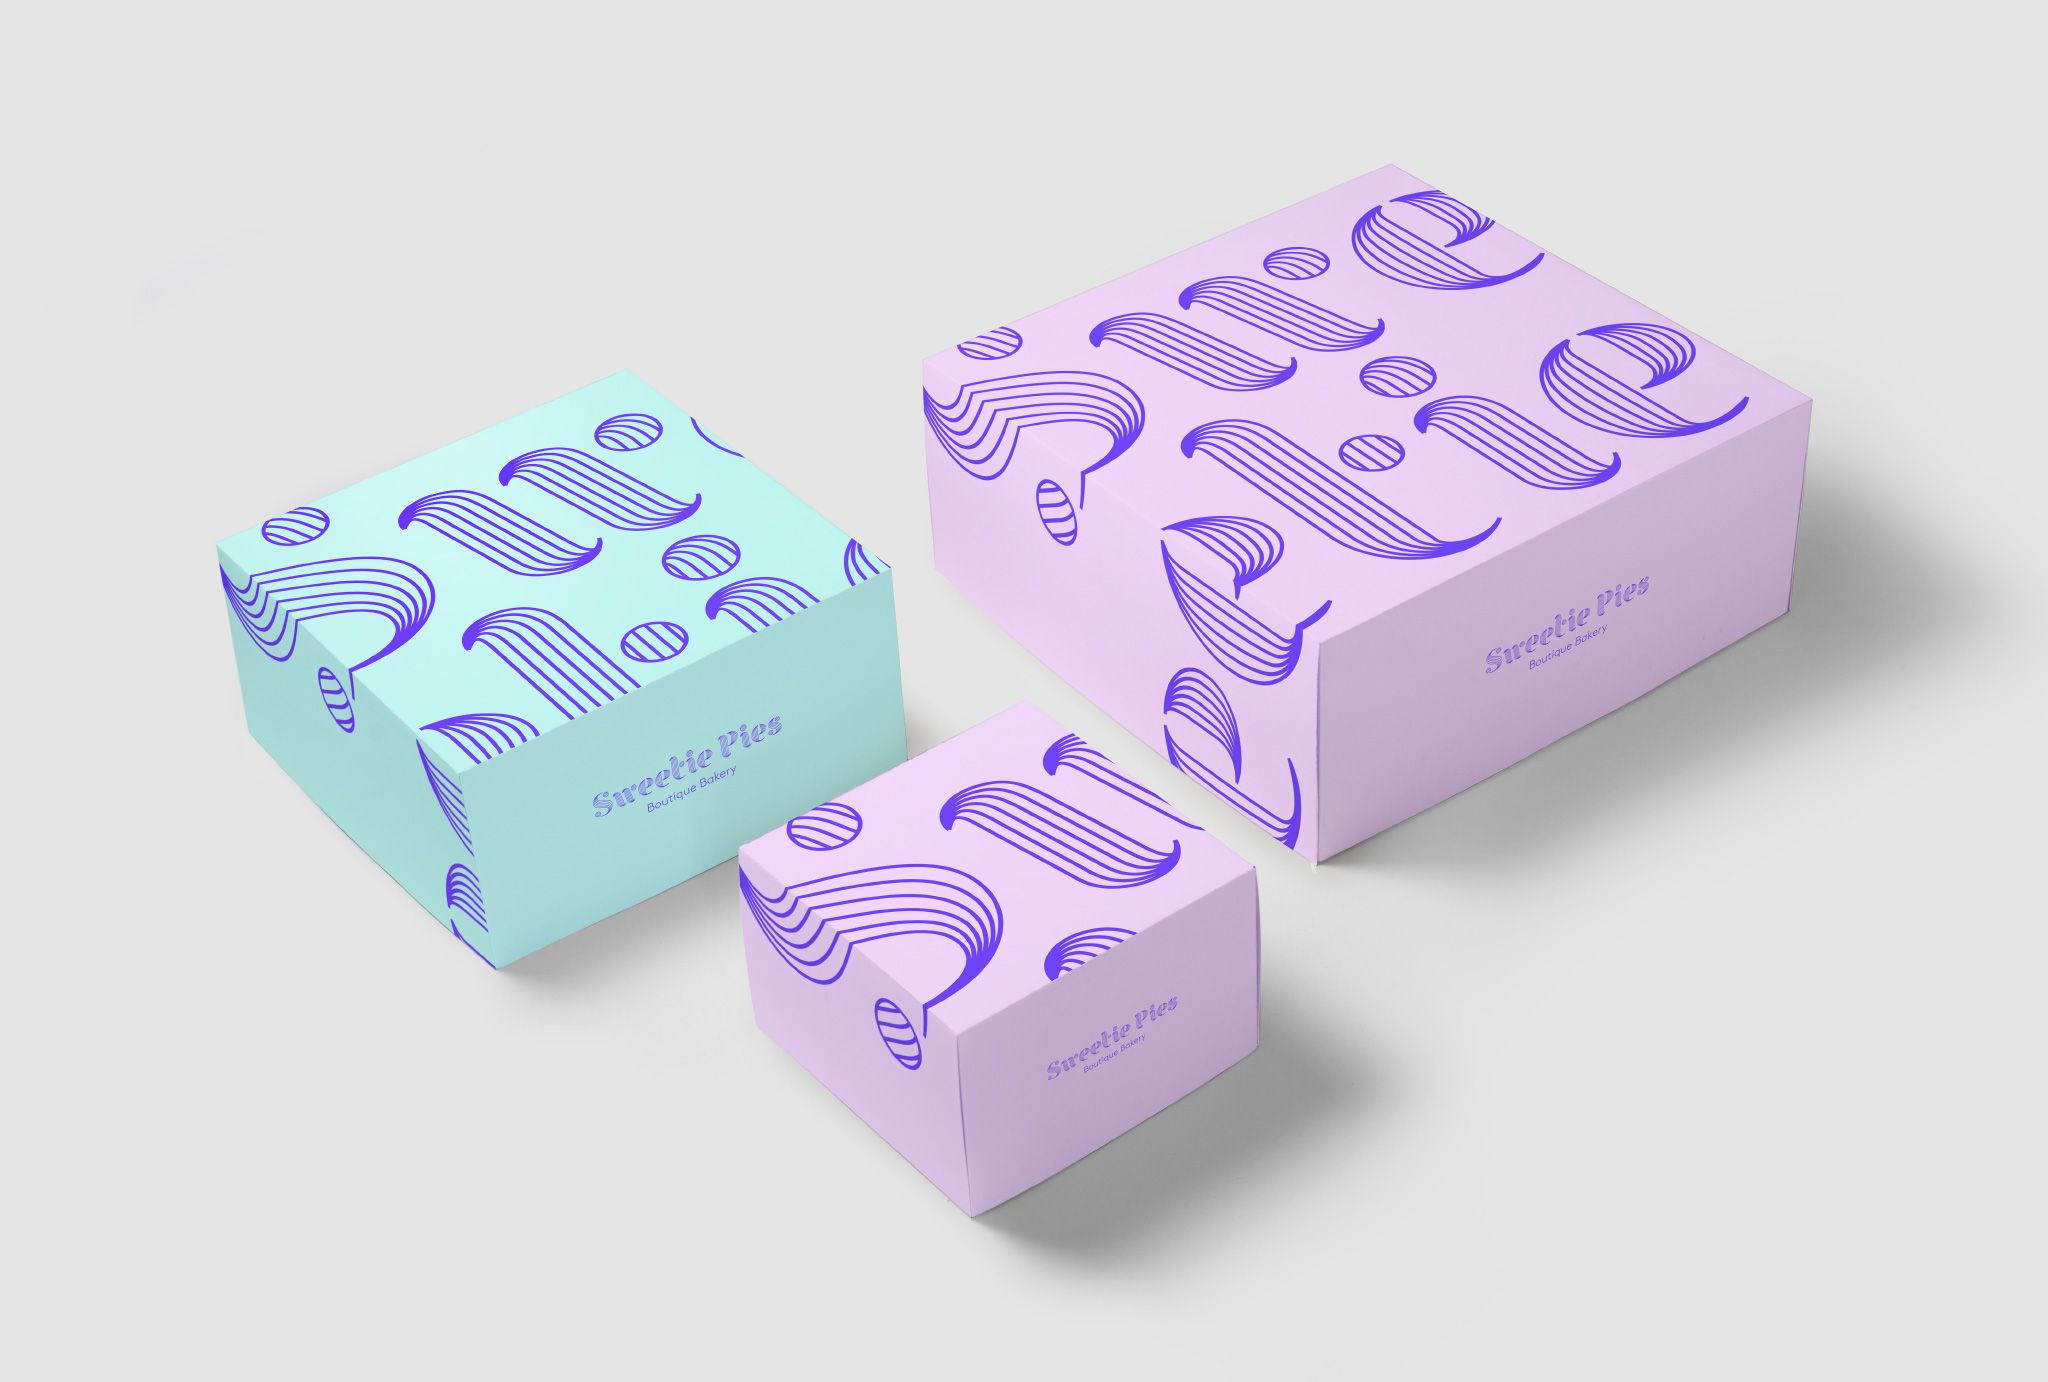 three boxes next to each other in lilac and turquoise